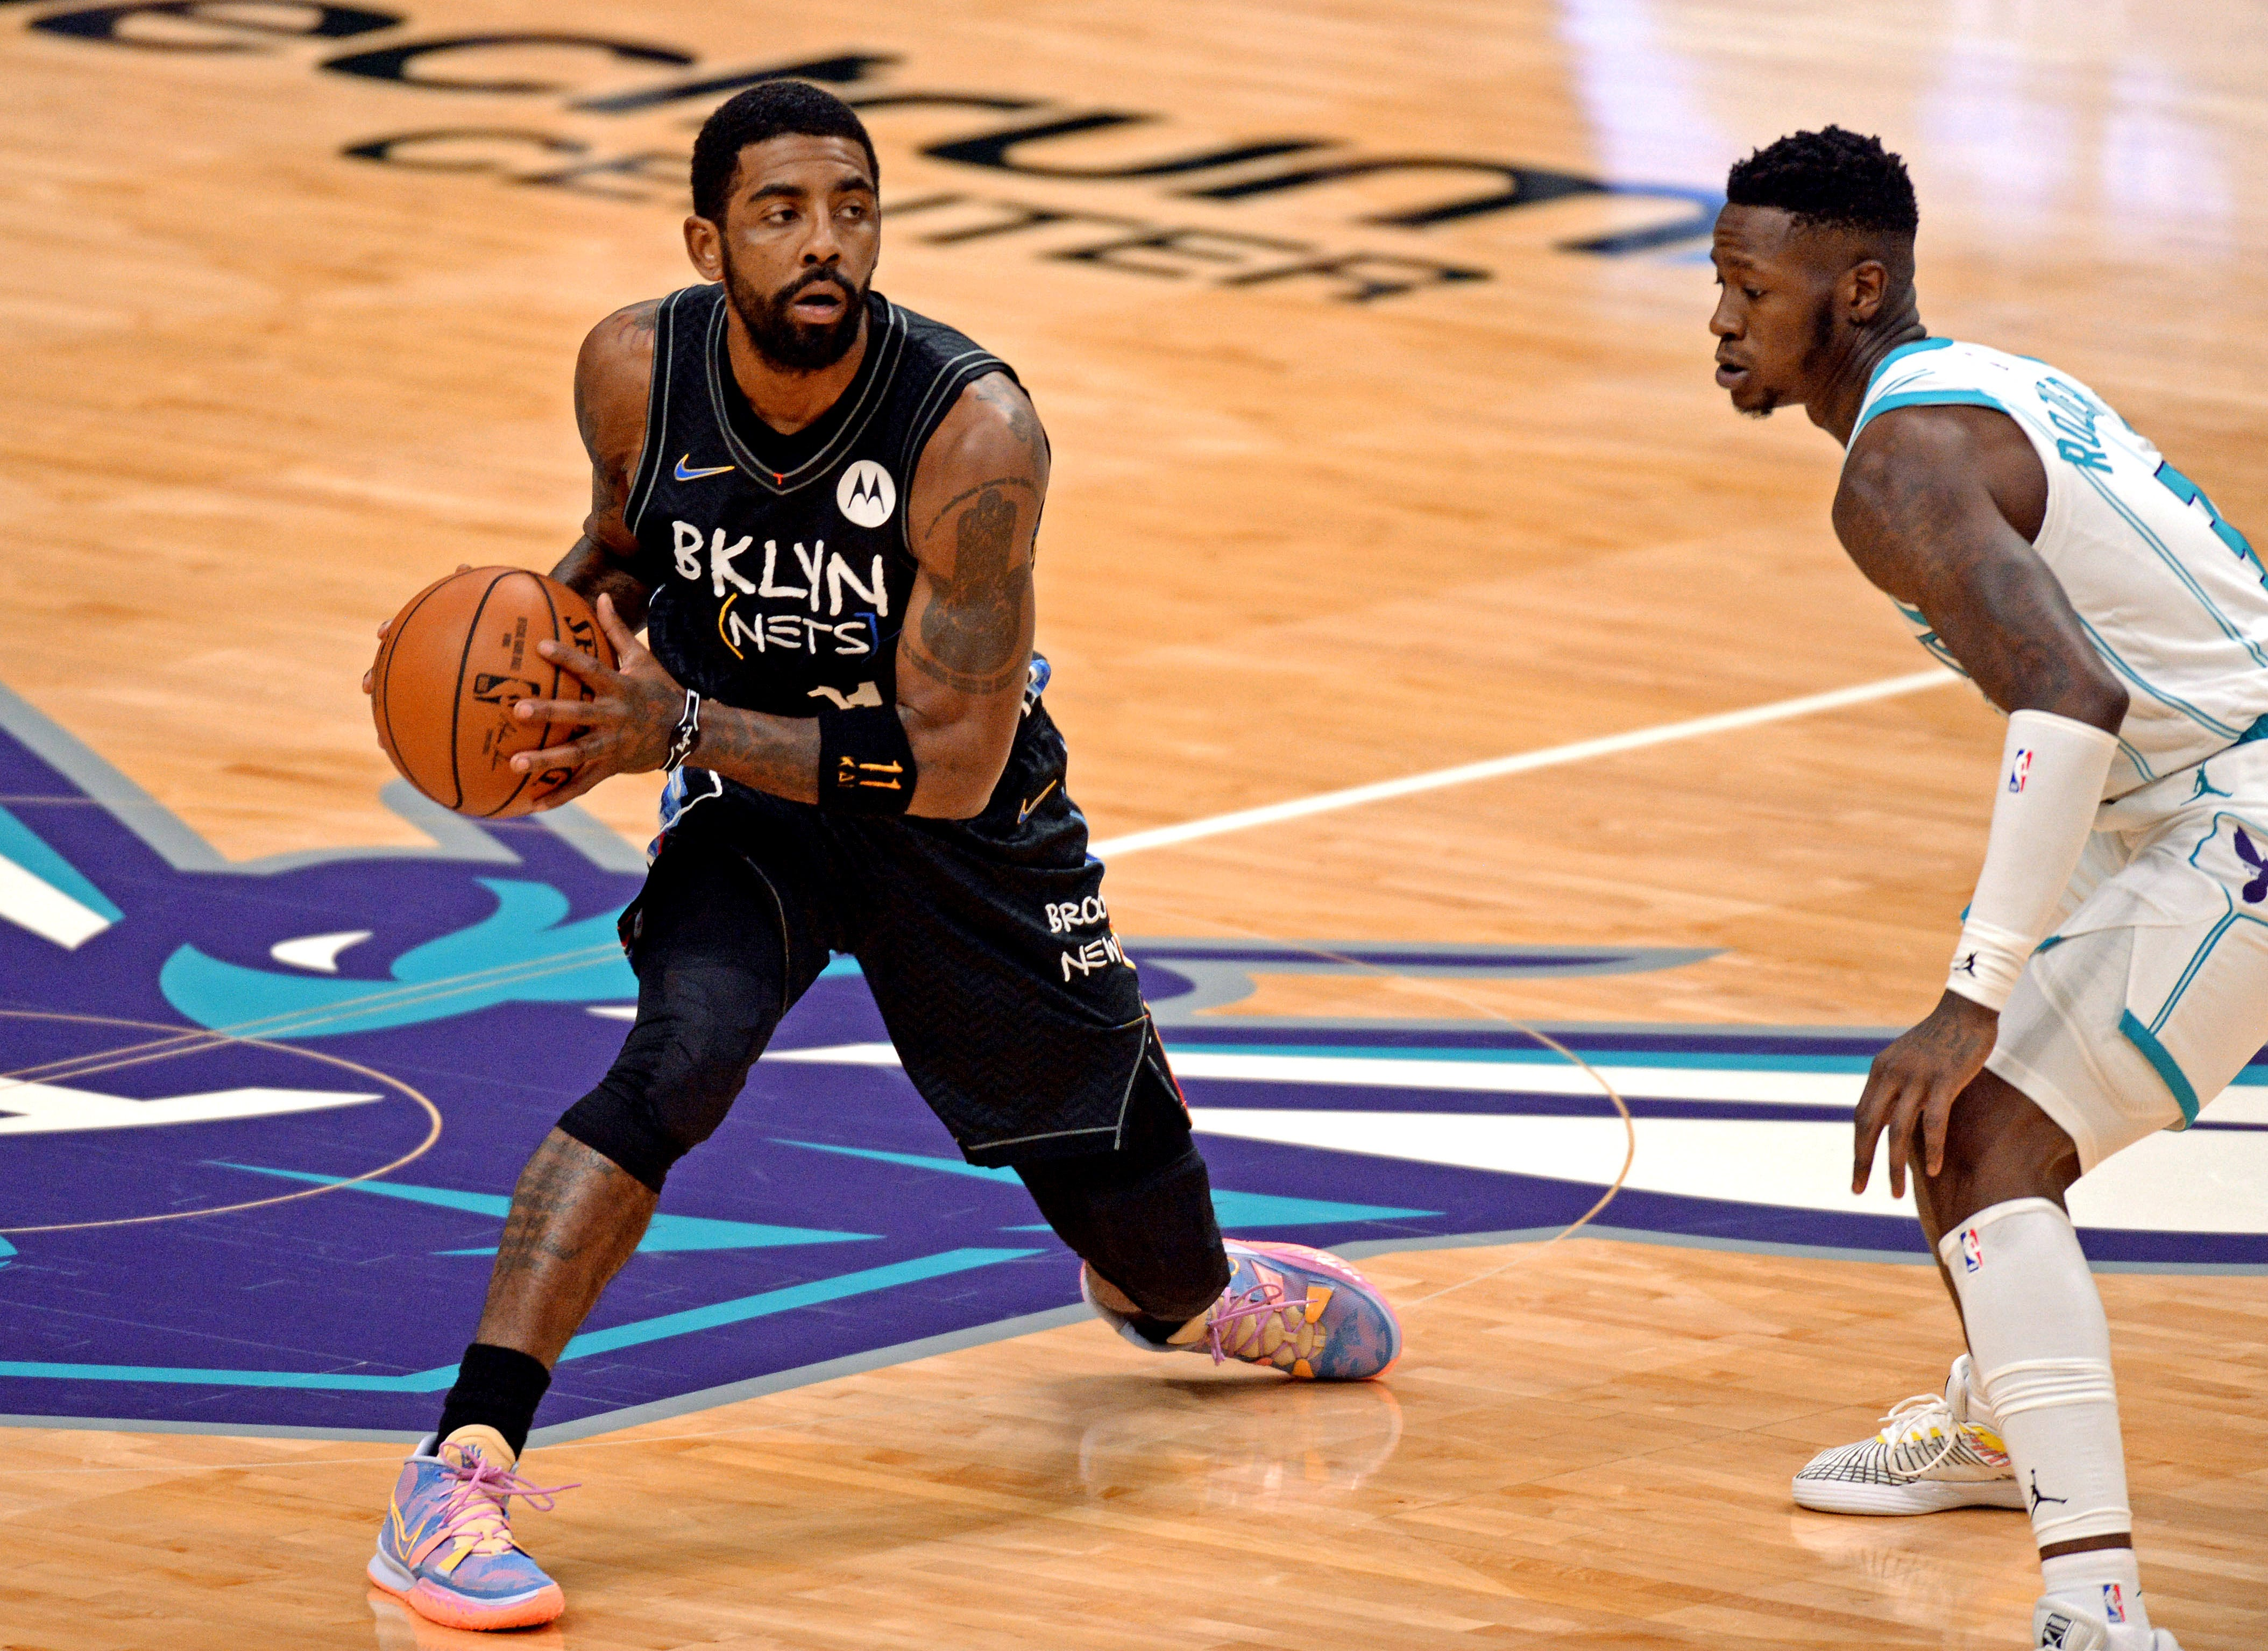 Nets guard Kyrie Irving bought house for family of George Floyd, according to former NBA player Stephen Jackson